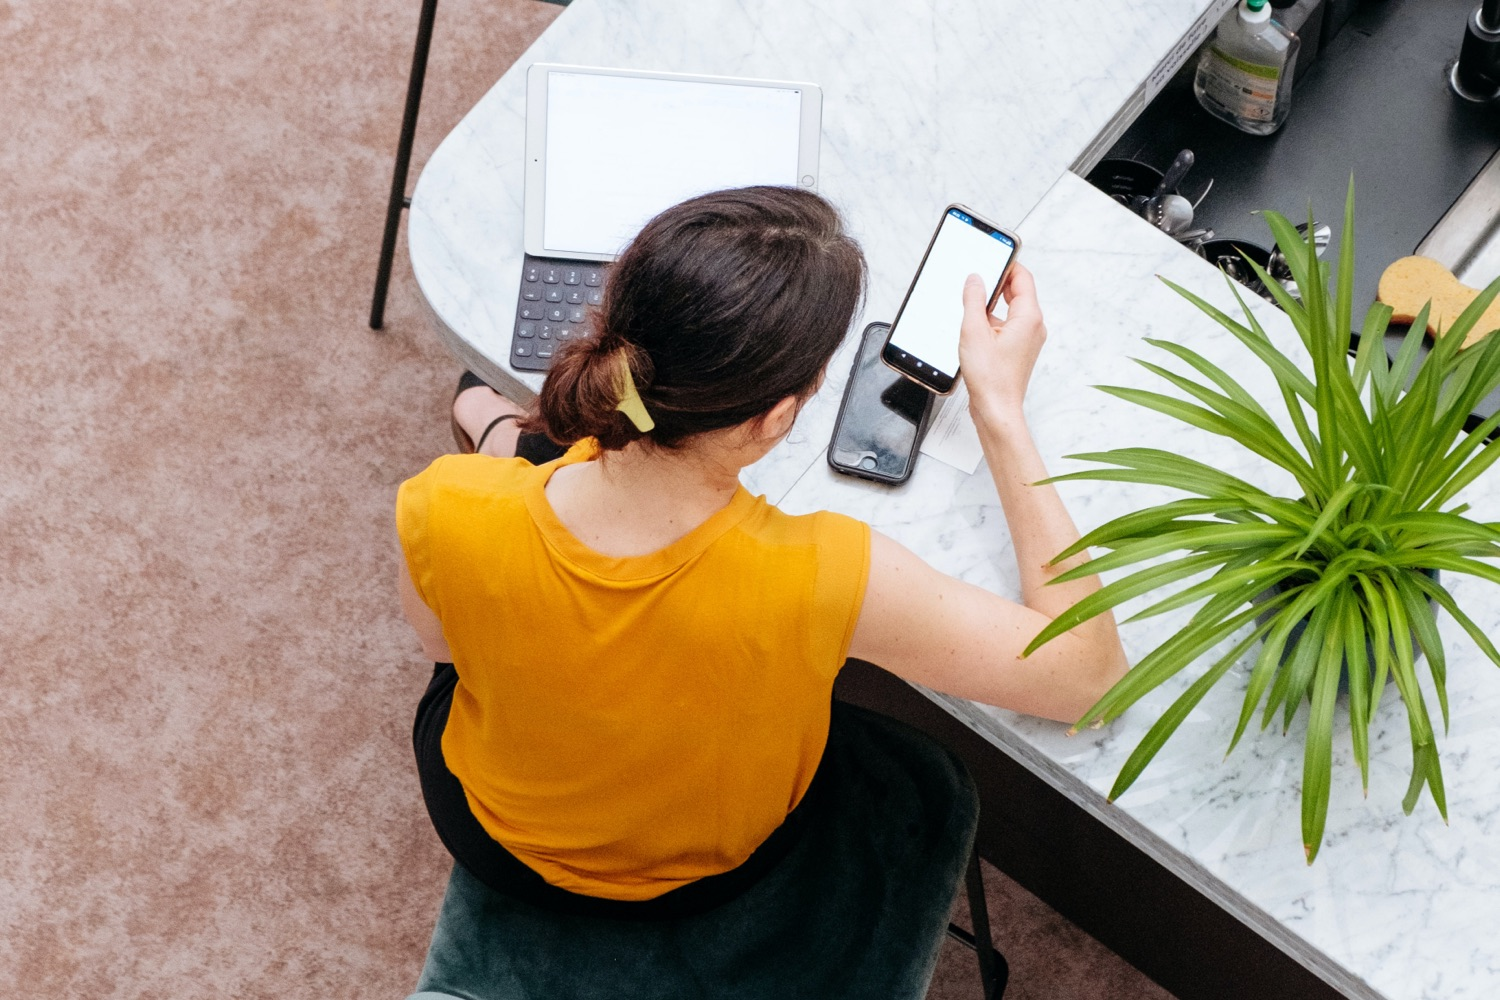 Woman at a table with laptop and phone in hand.